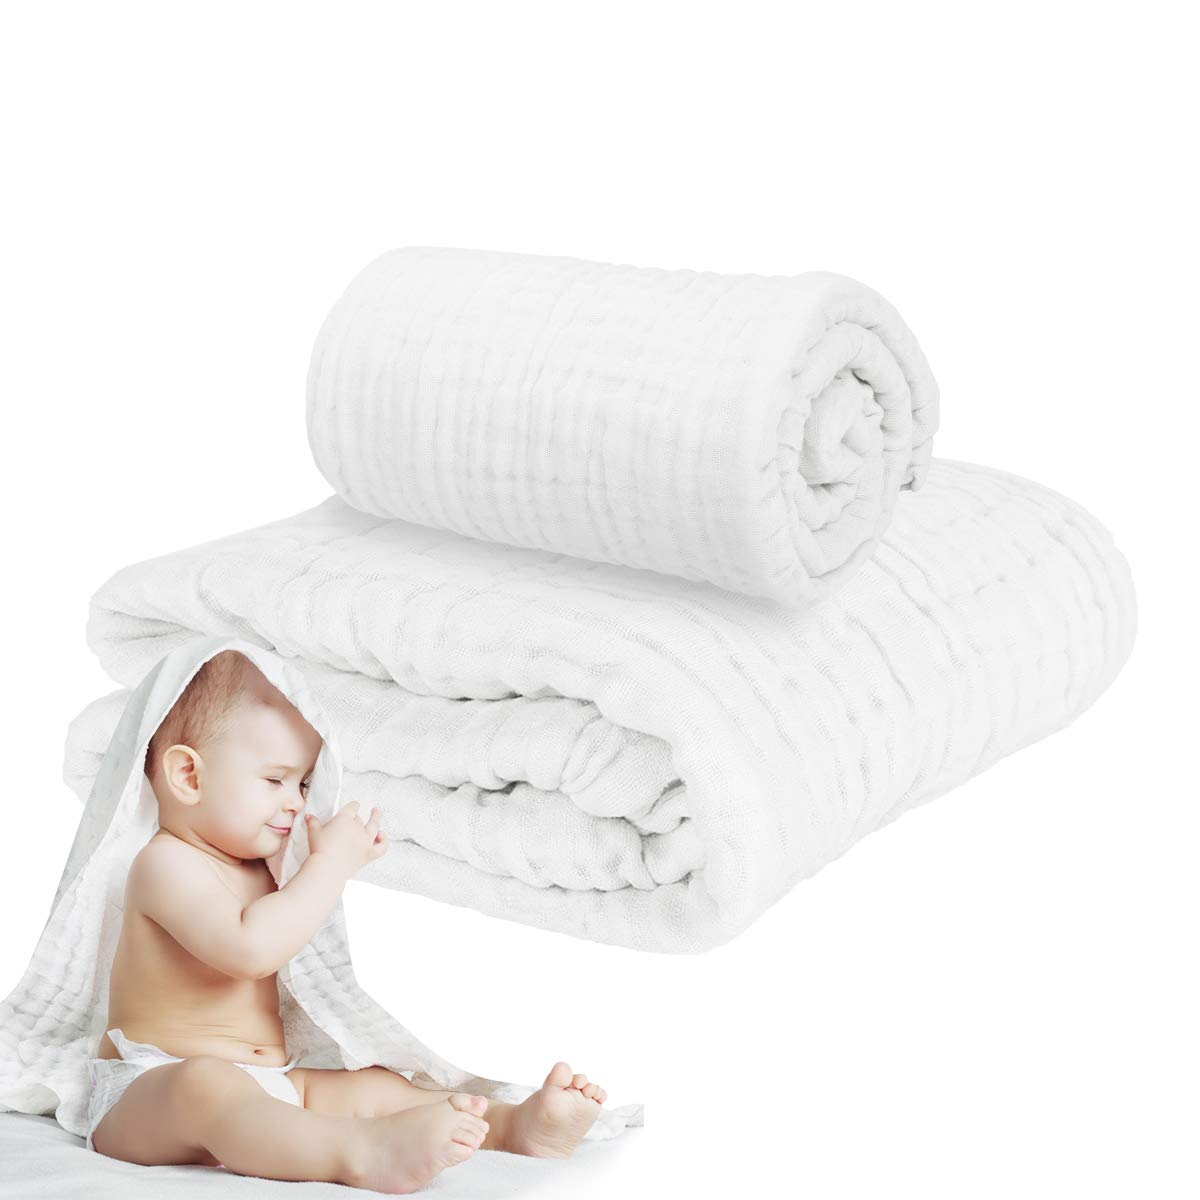 Muslin Baby Towel Super Soft Cotton Baby Bath Towel 6 Layers Infant Towel Newborn Towel Blanket Suitable for Baby's Delicate Skin 40 x 40inches White by Fook Fish